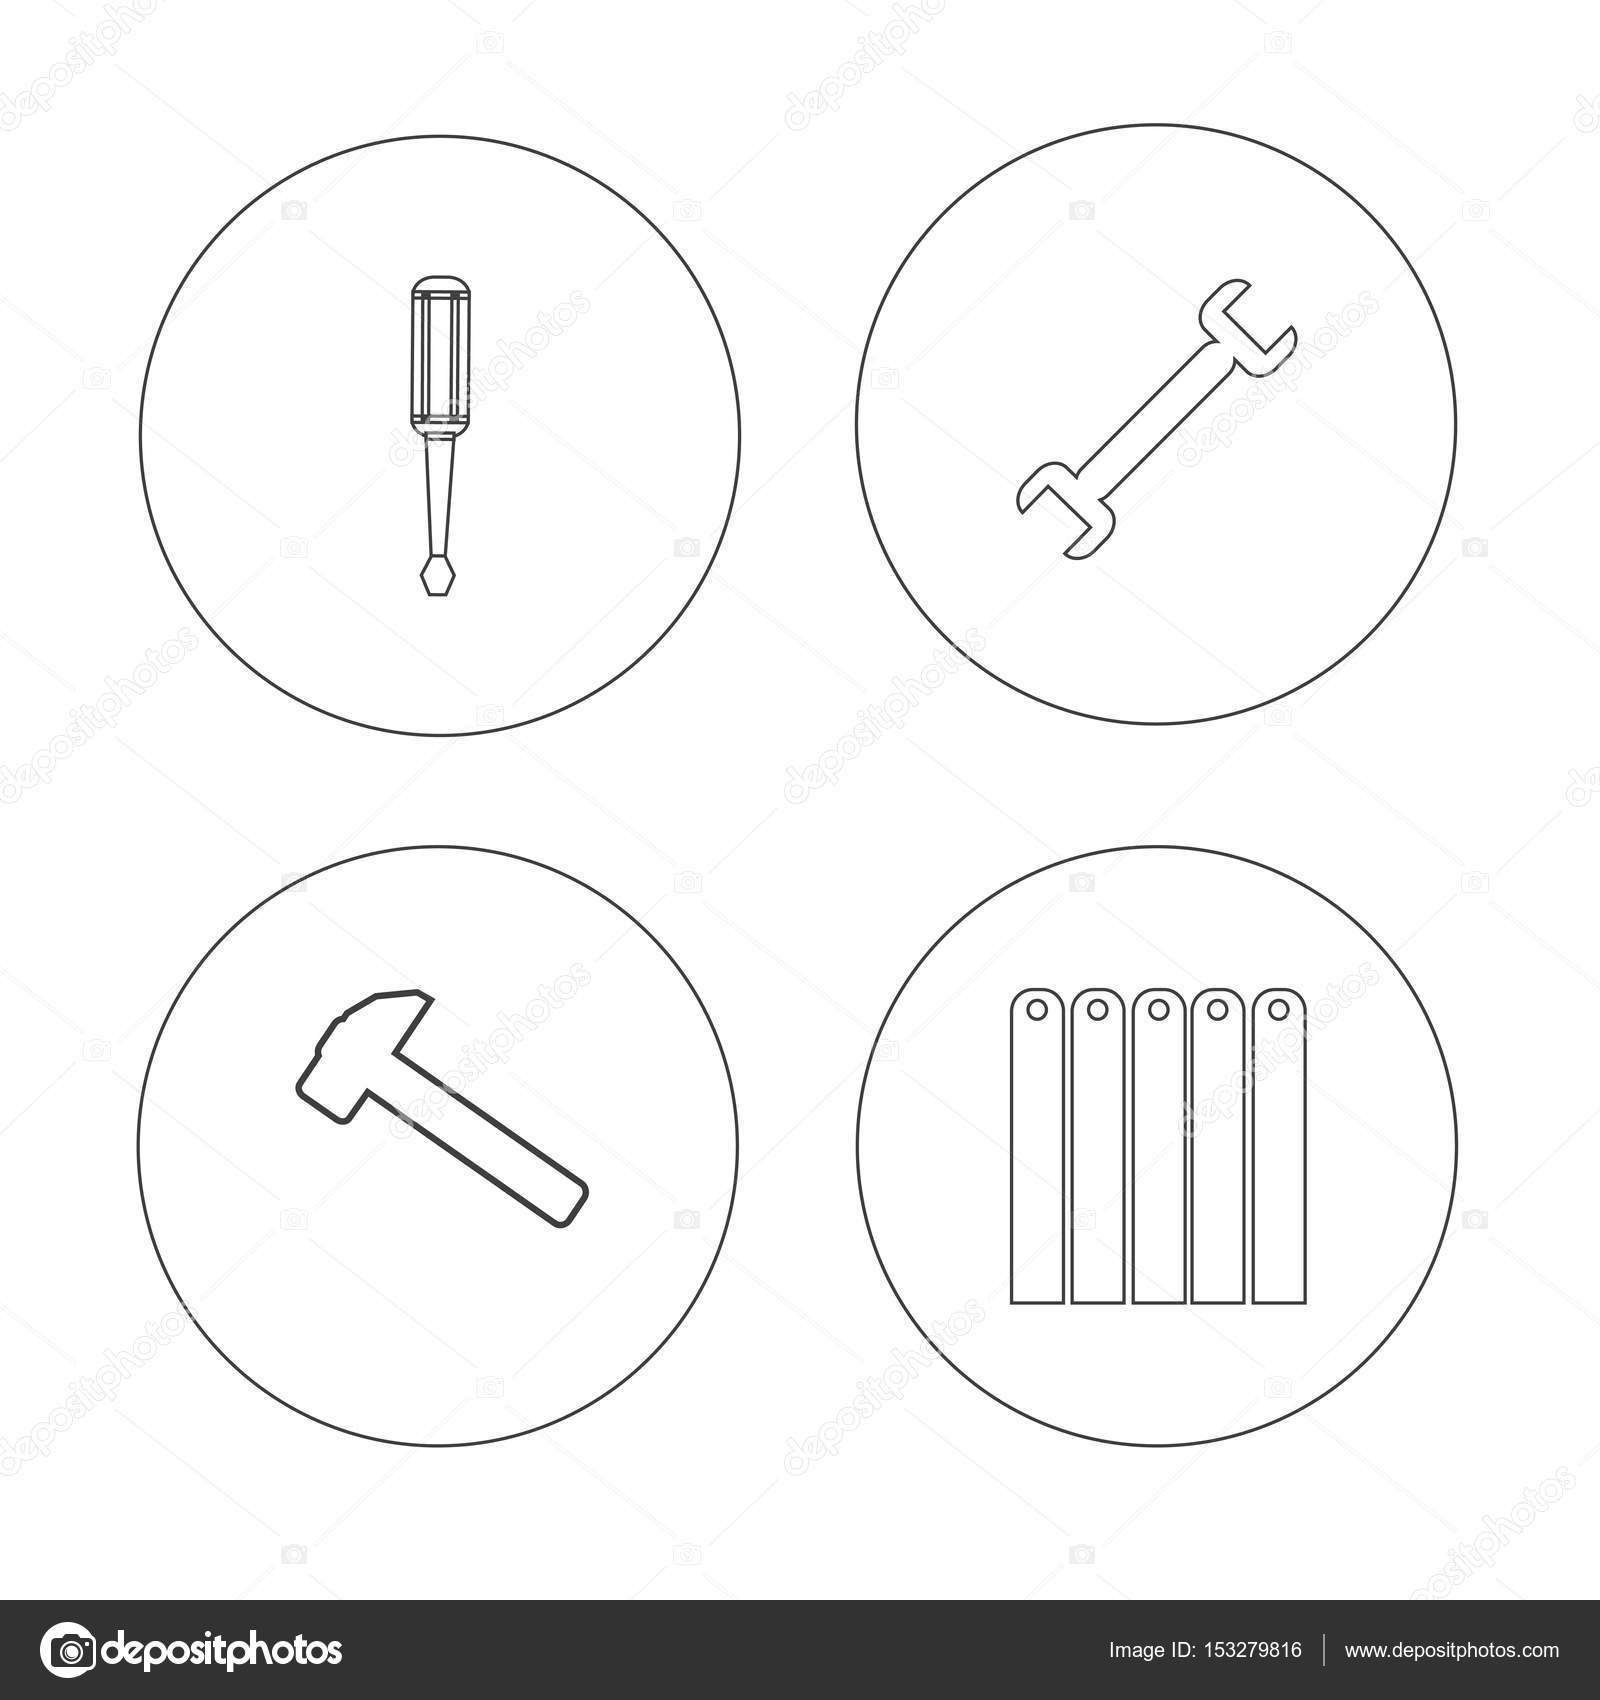 hight resolution of hvac drawing tools basic electronics wiring diagramhvac and heating repair tools logo u2014 stock